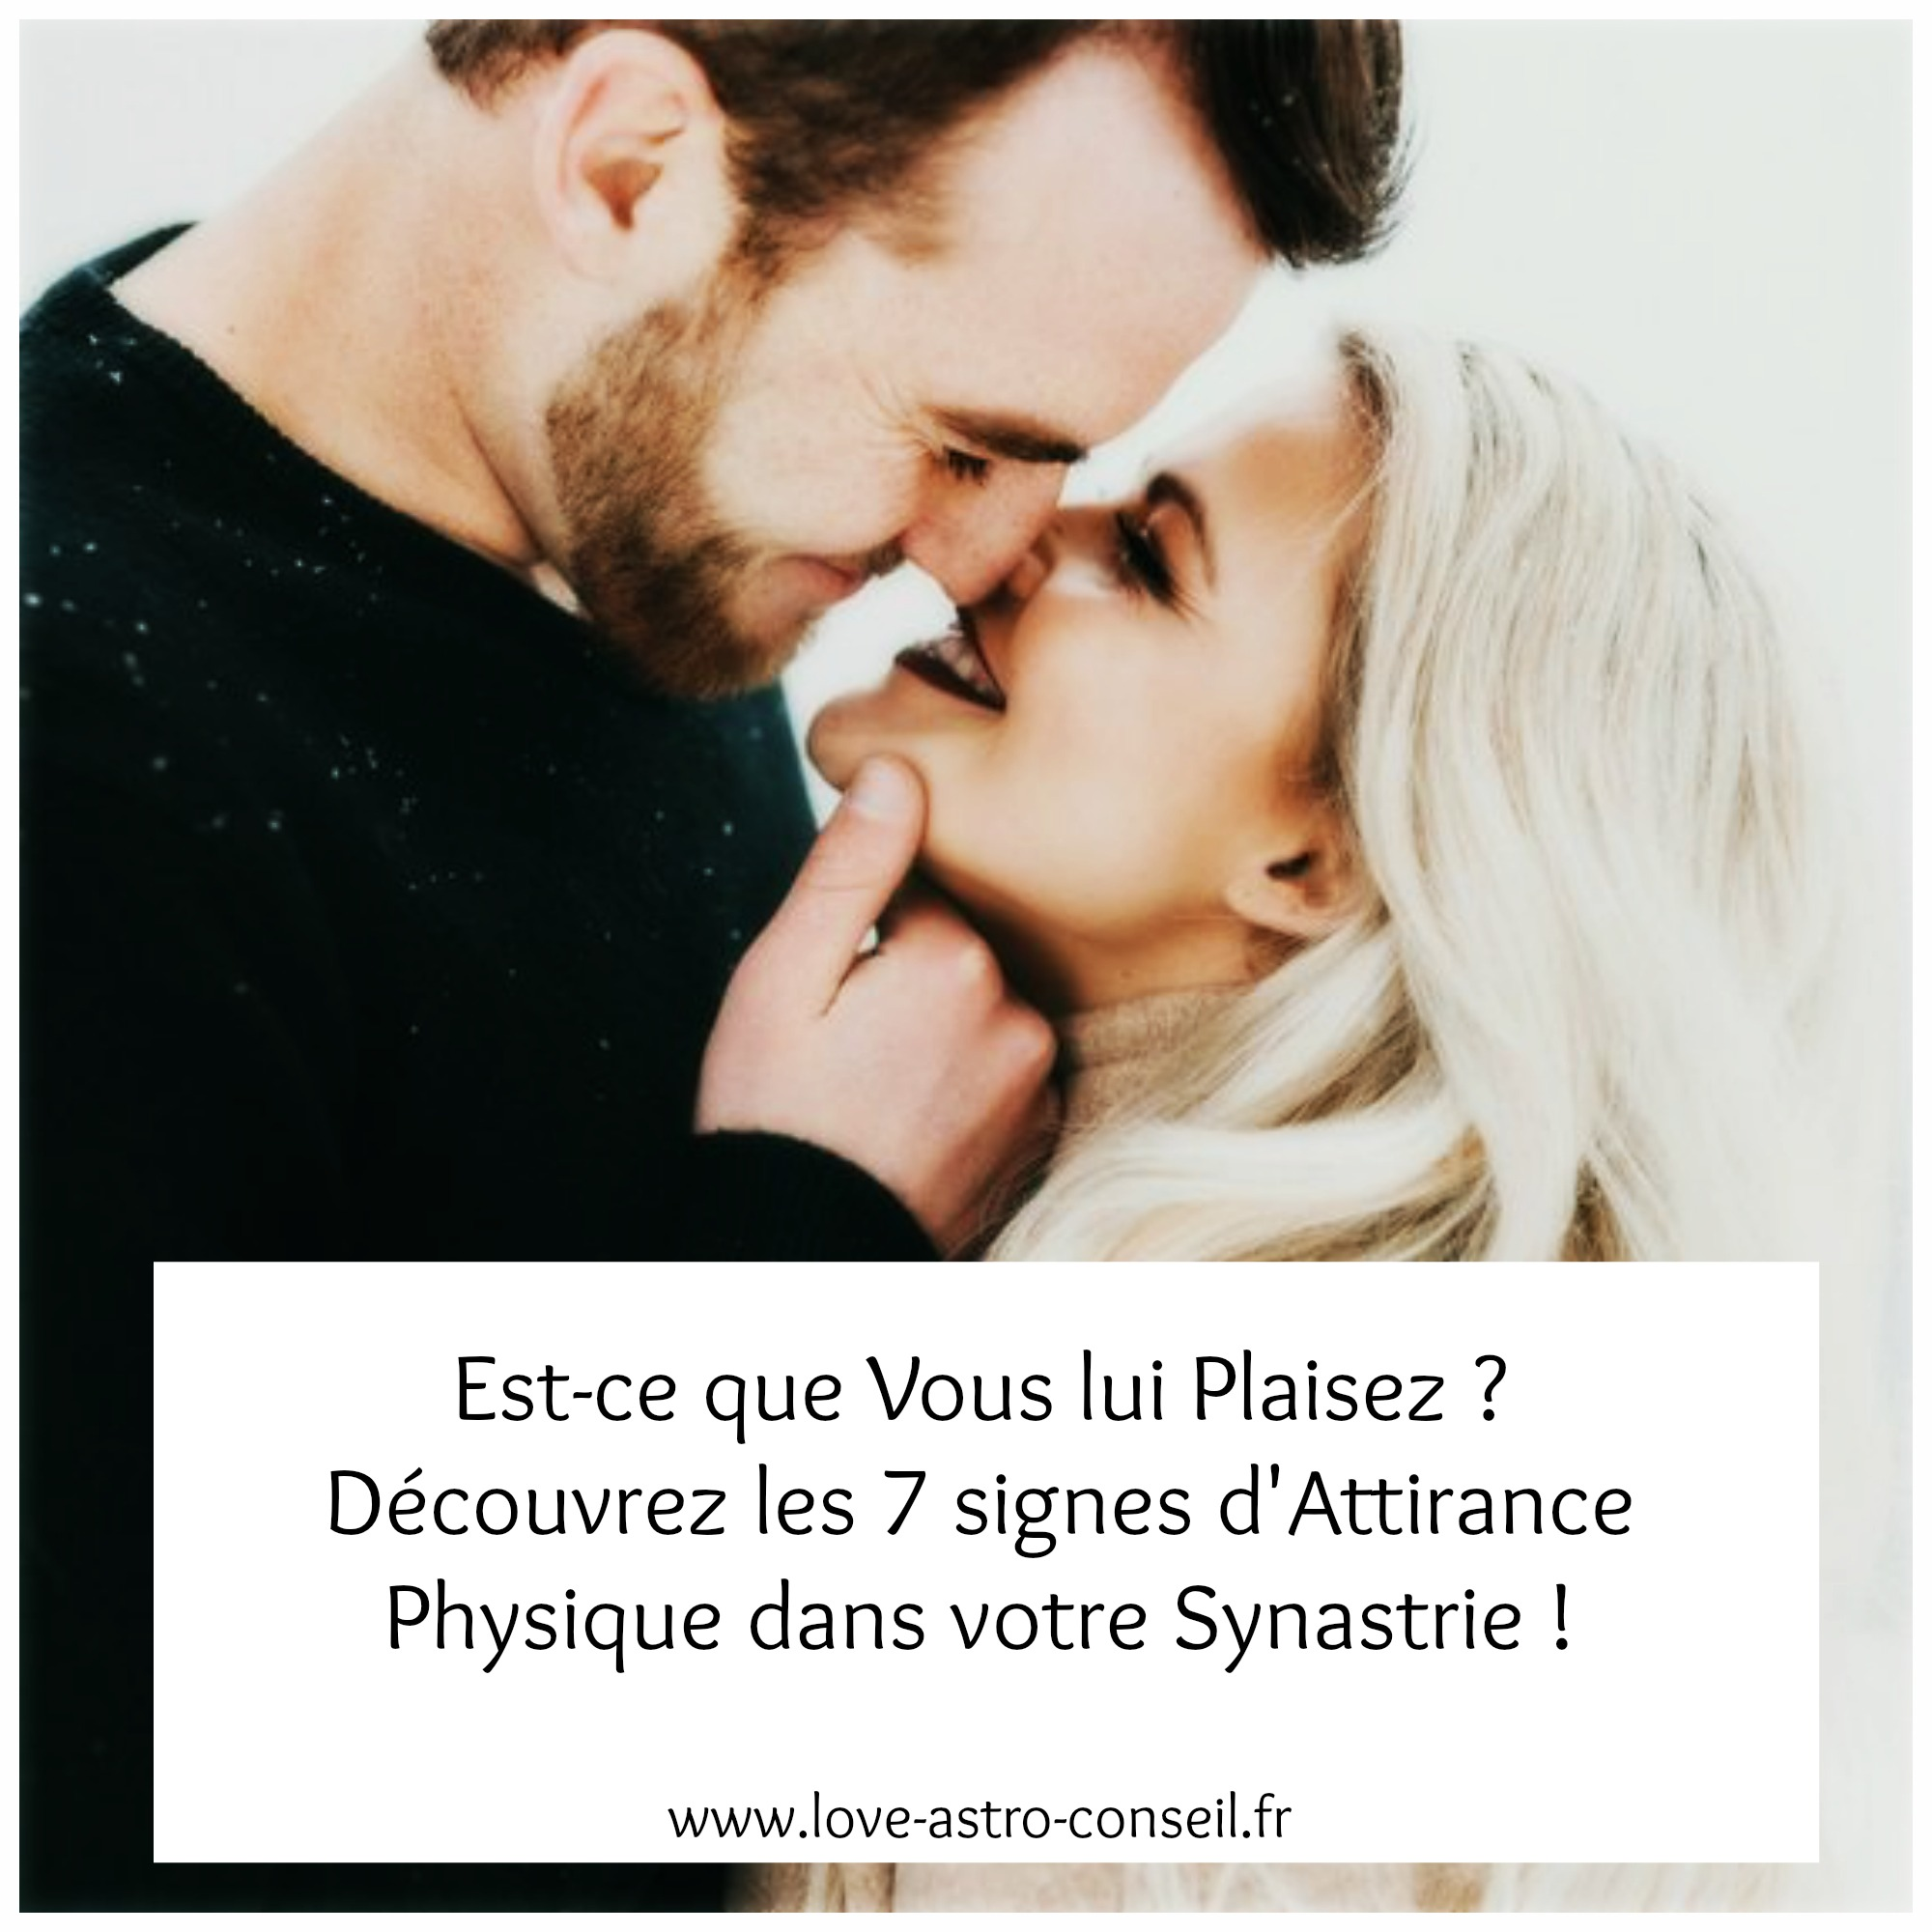 attraction physique synastrie